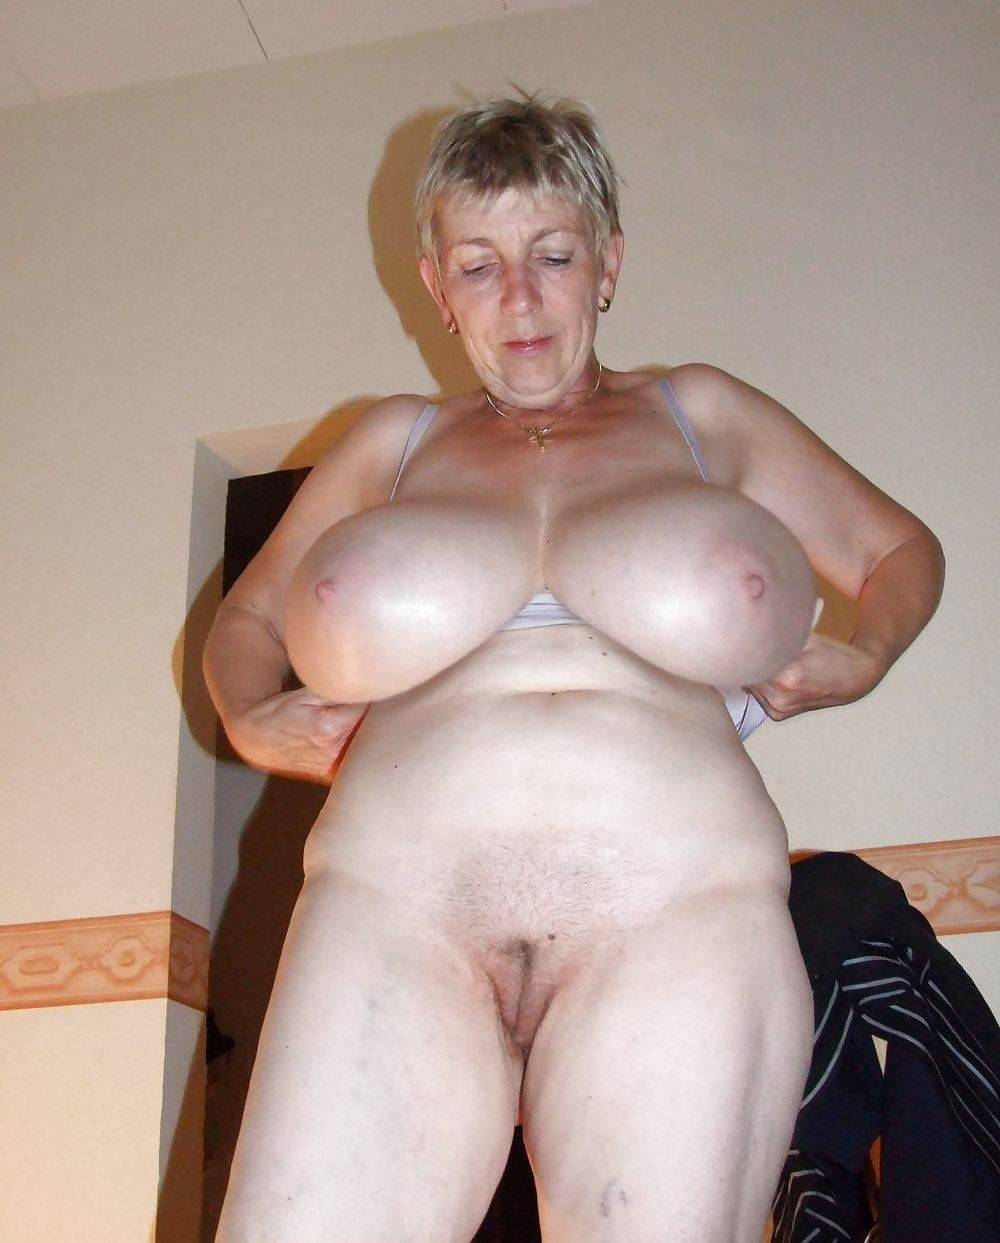 Big granny boobs in the world